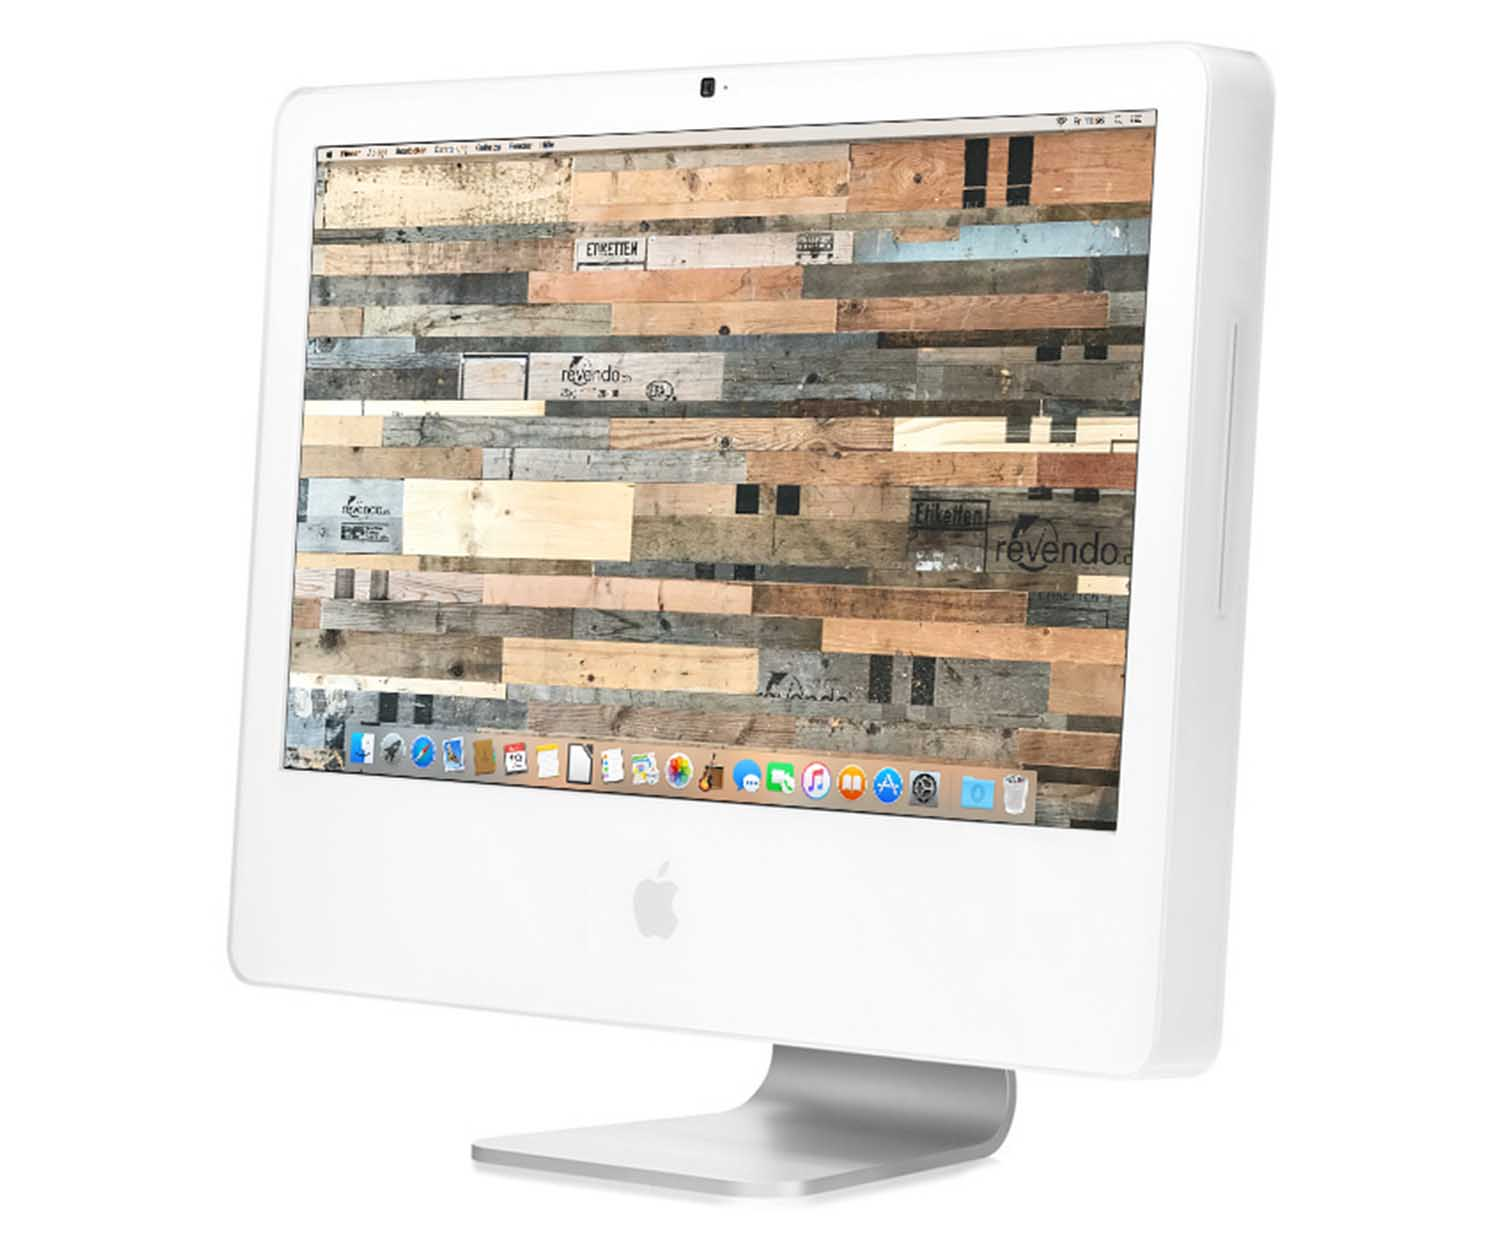 imac 20 zoll ghz core 2 duo. Black Bedroom Furniture Sets. Home Design Ideas